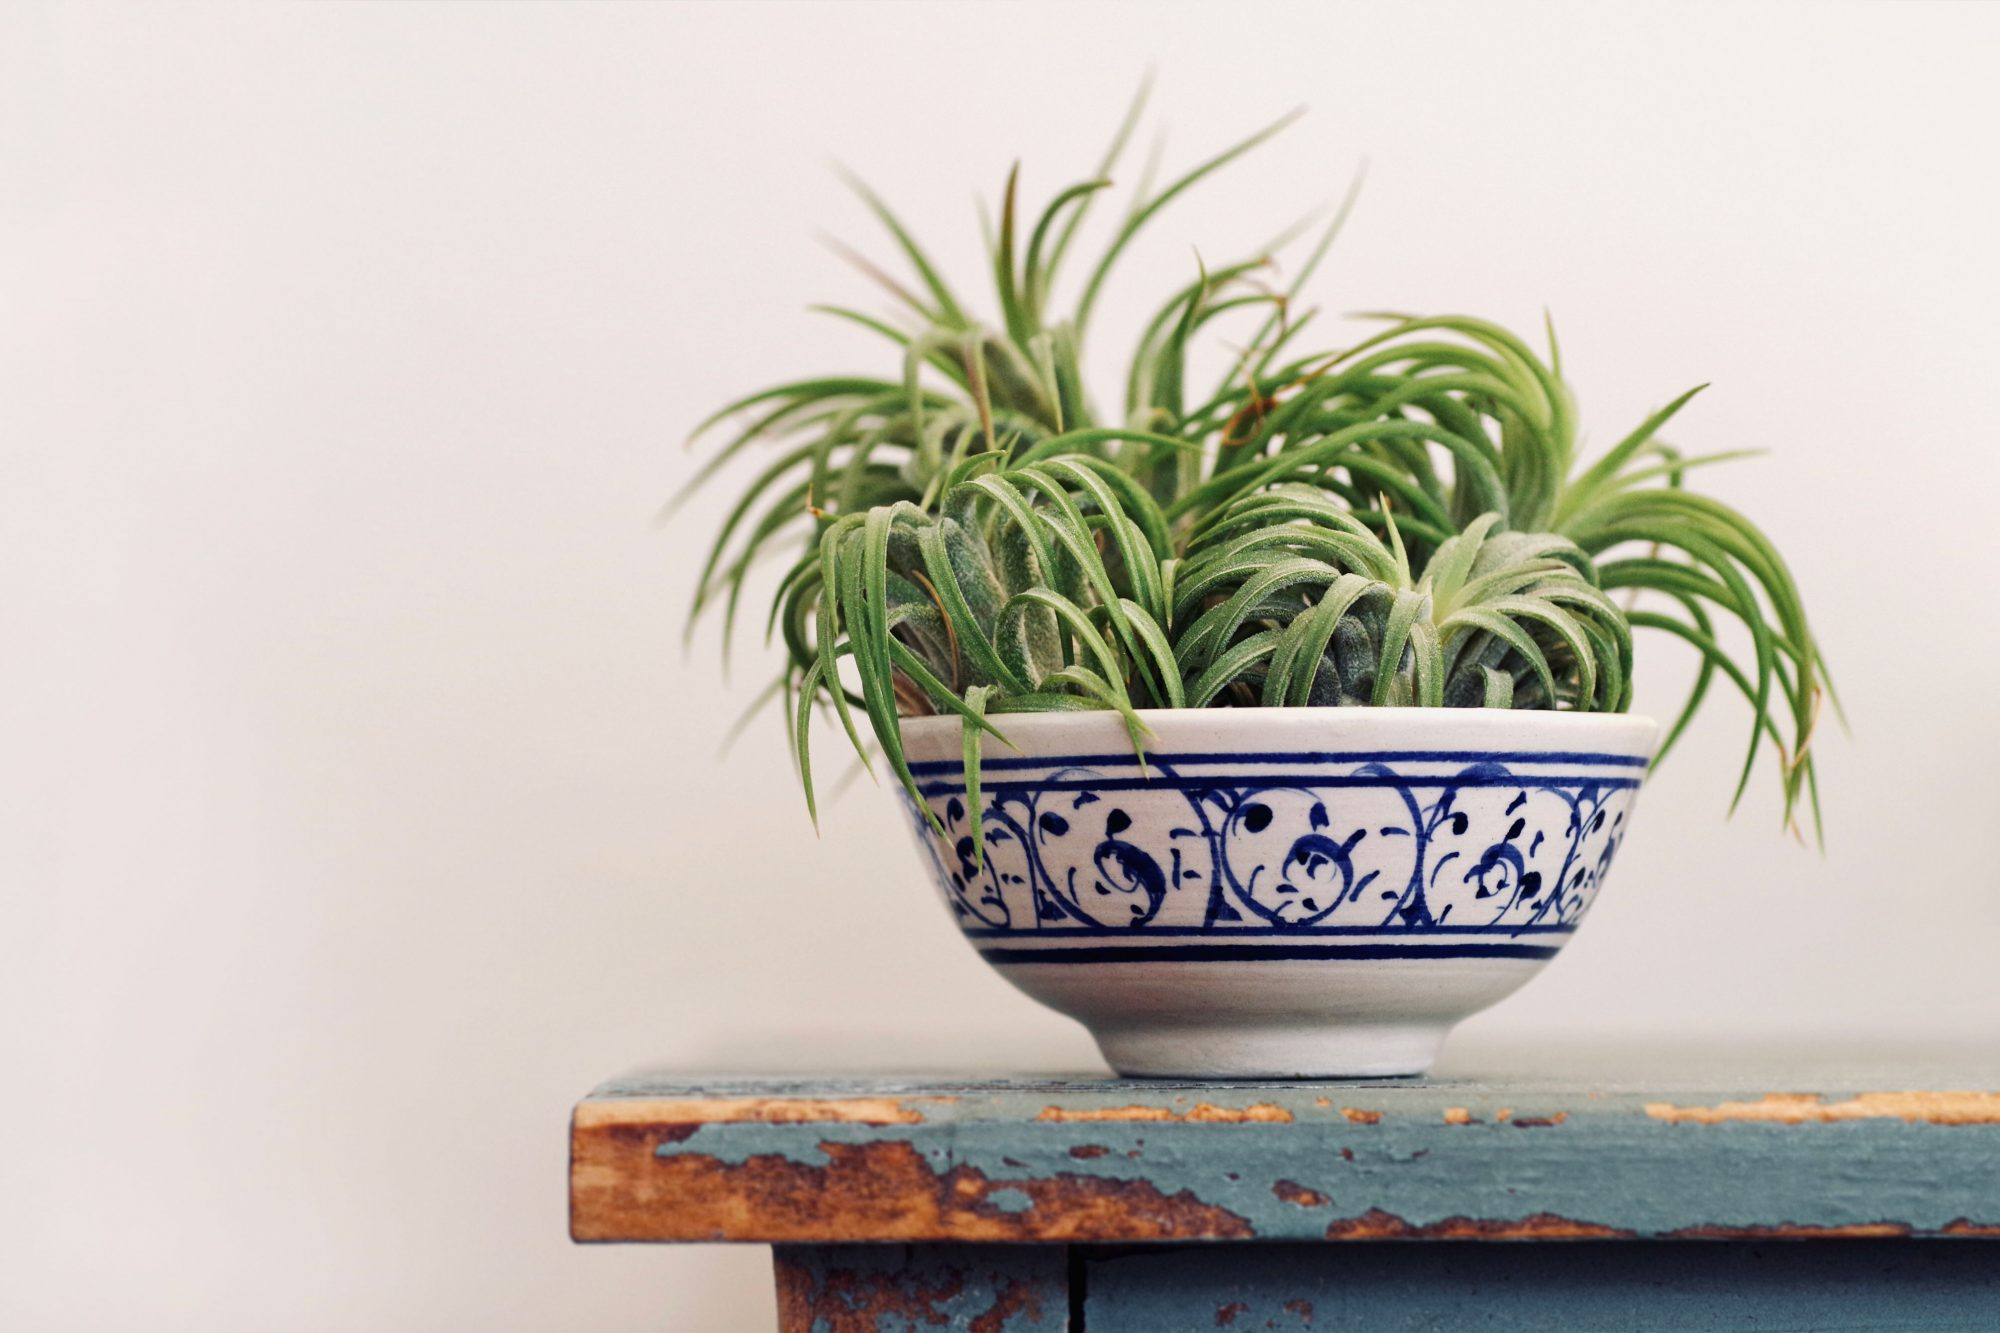 Air Plants in a China Dish on an Old Table